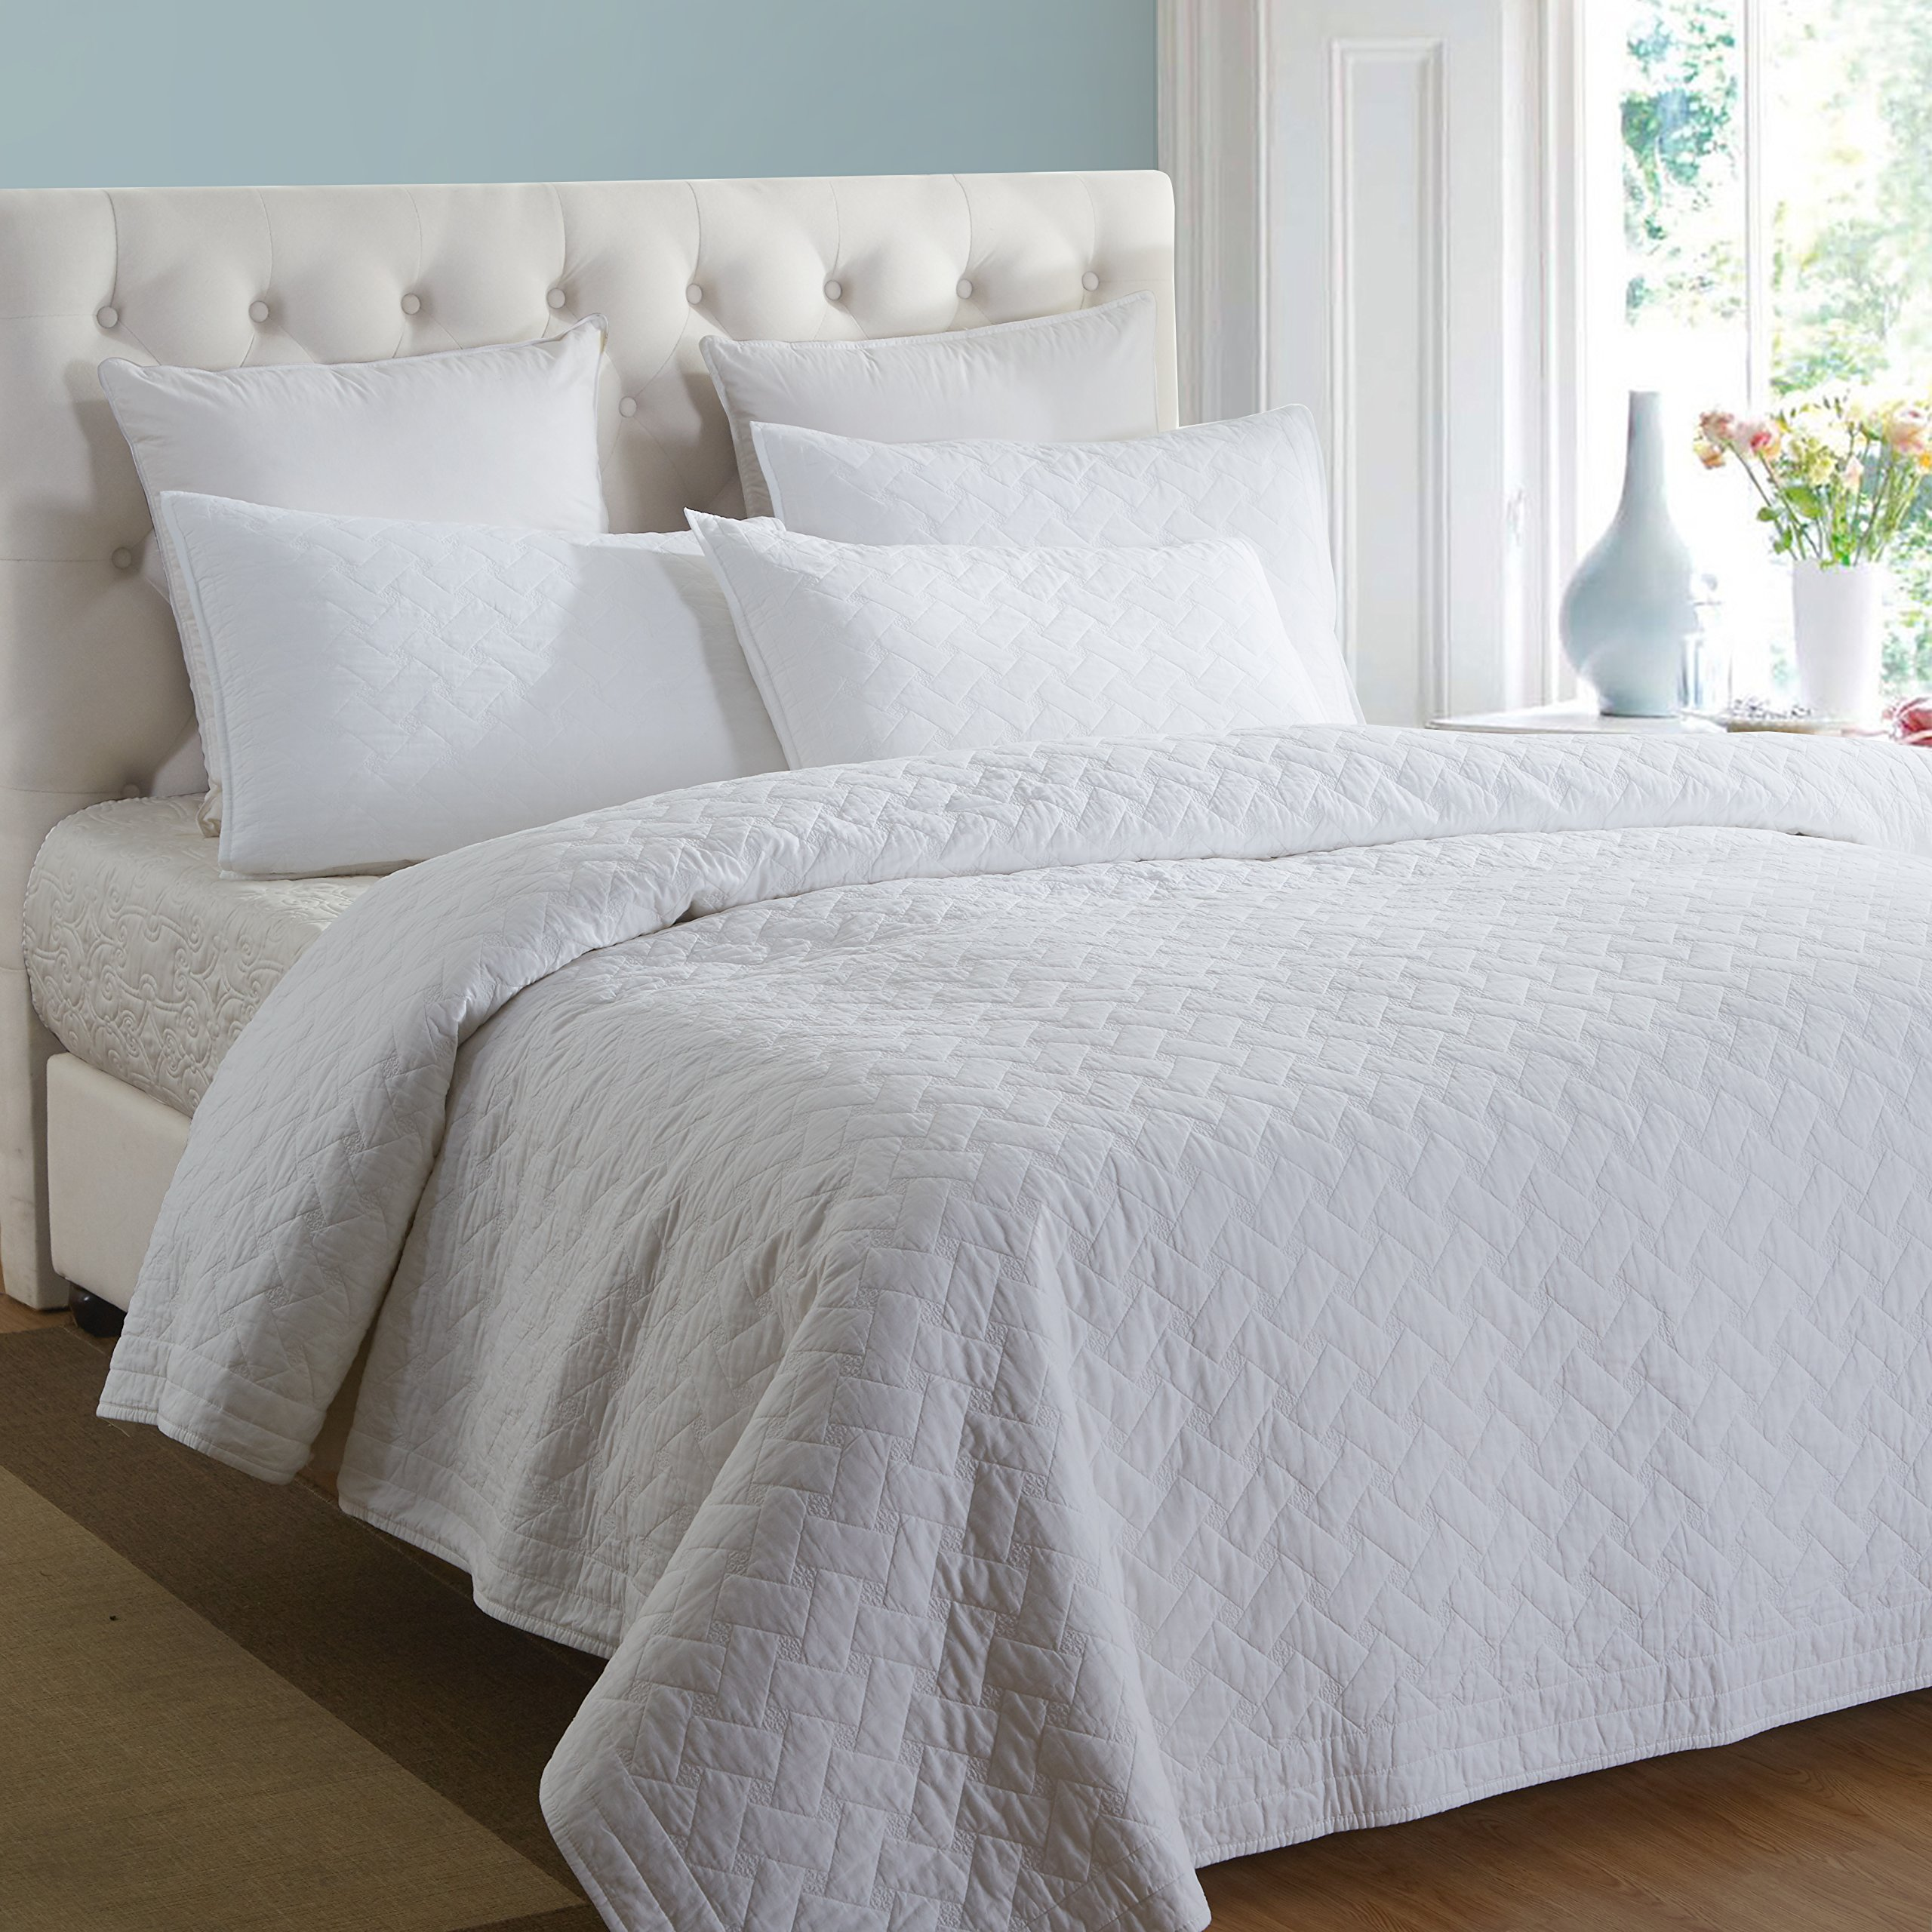 your matelasse house touch idea tips with class bed for bedding chenille twin of stunning bedspreads and bedspread